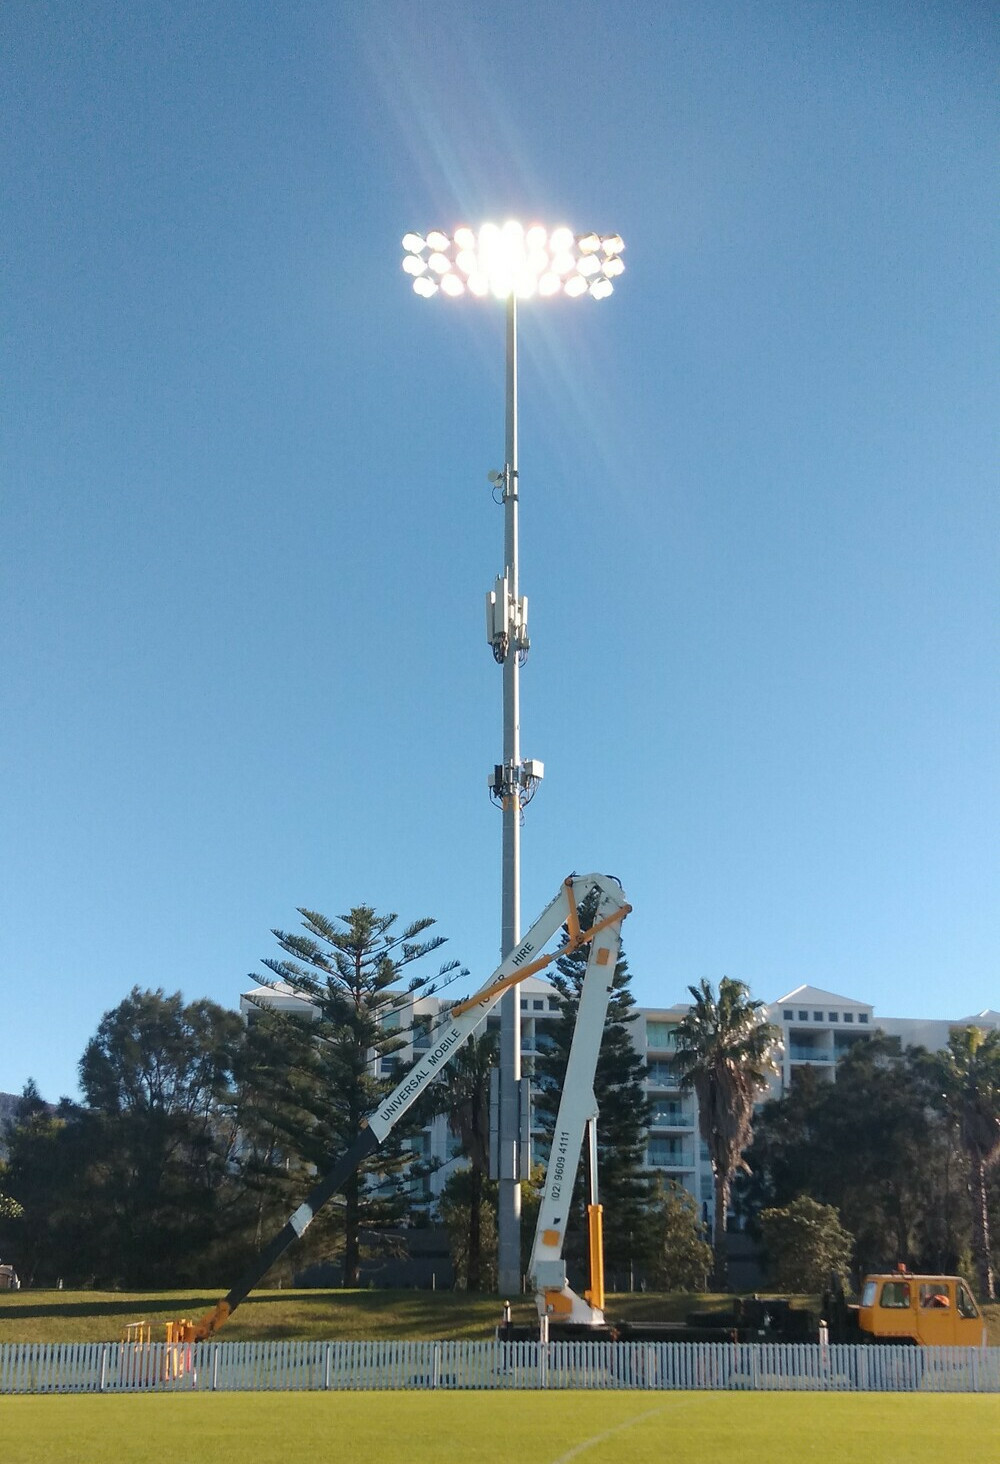 Lighting repairs for Musco lighting, Wollongong Council